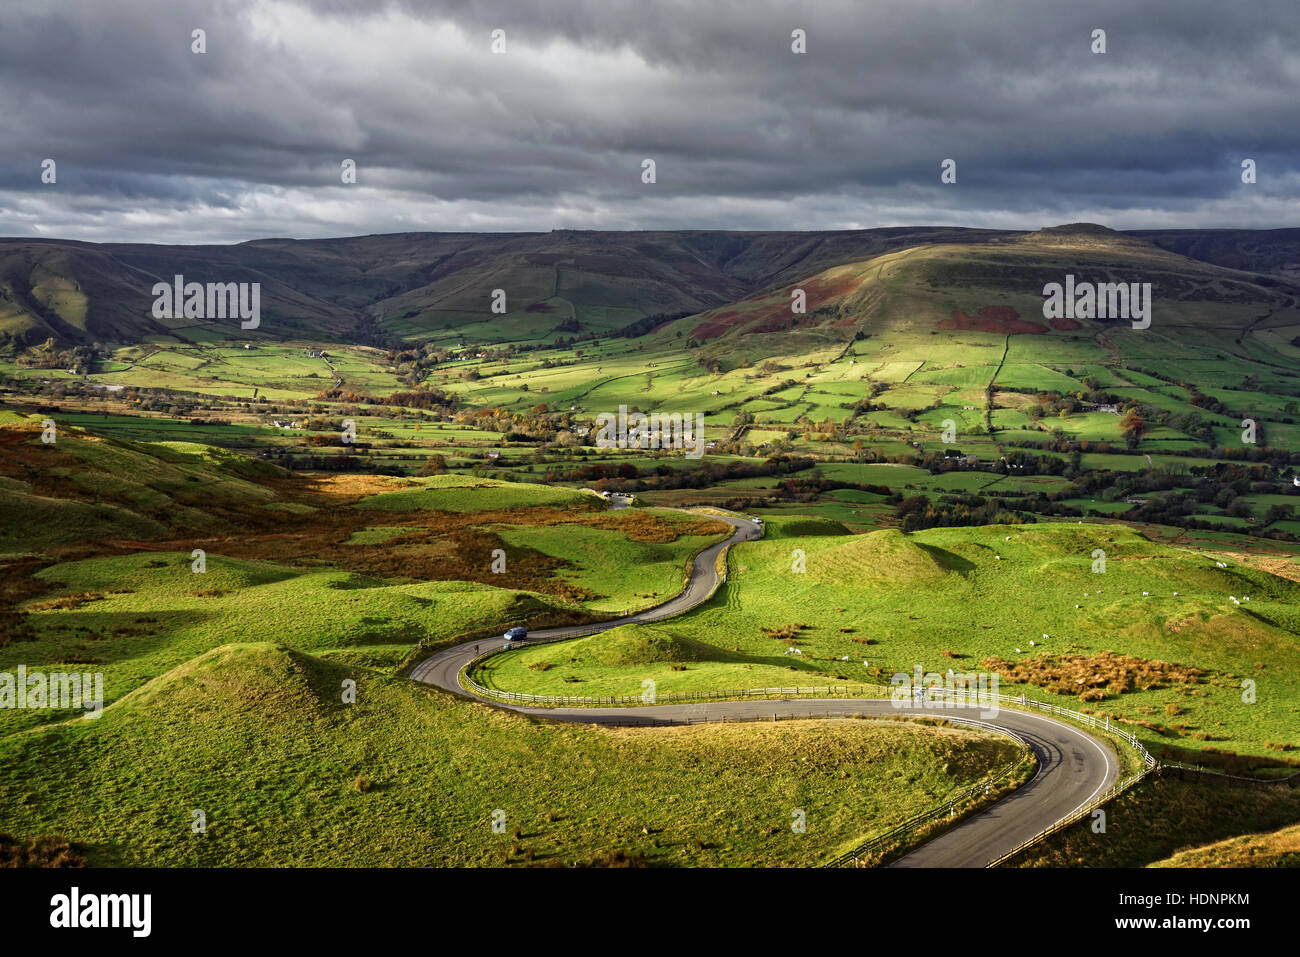 UK,Derbyshire,Peak District,Winding Road from Mam Tor To Edale - Stock Image